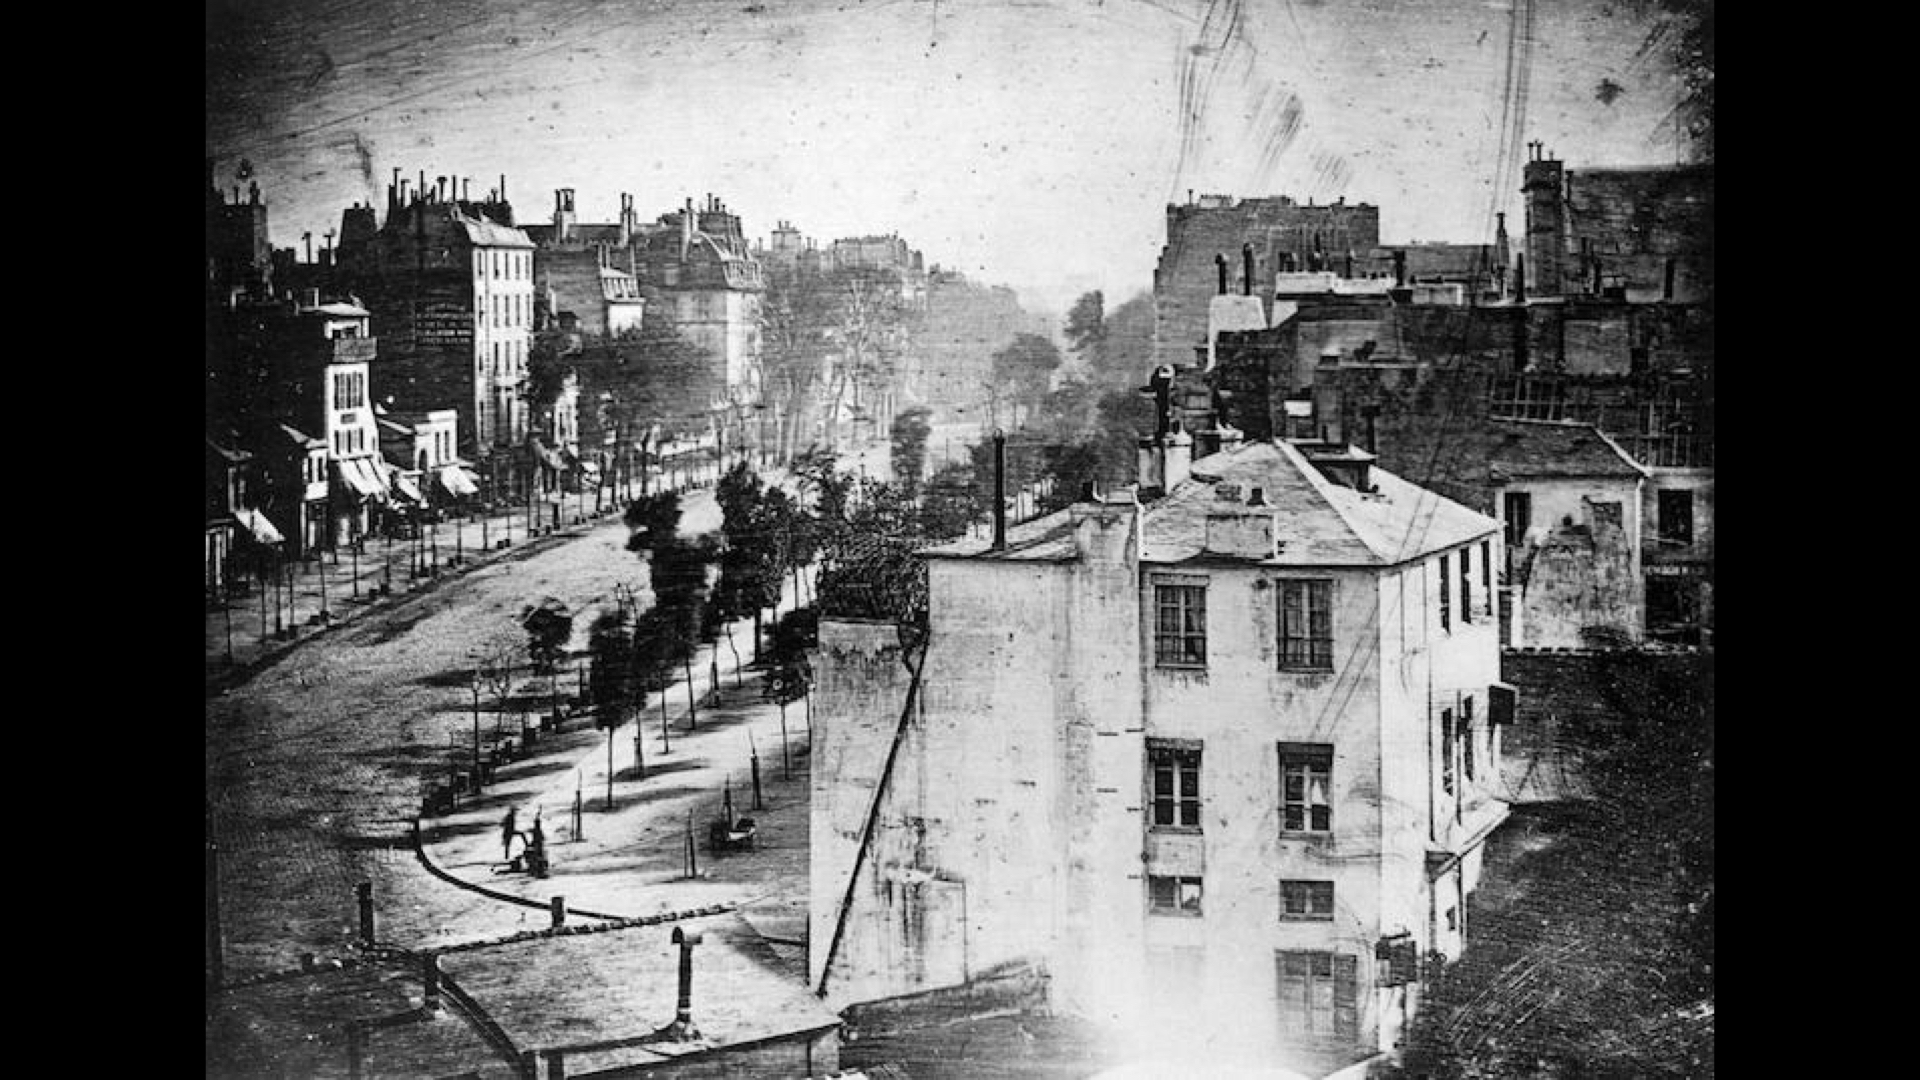 The first photograph with people.